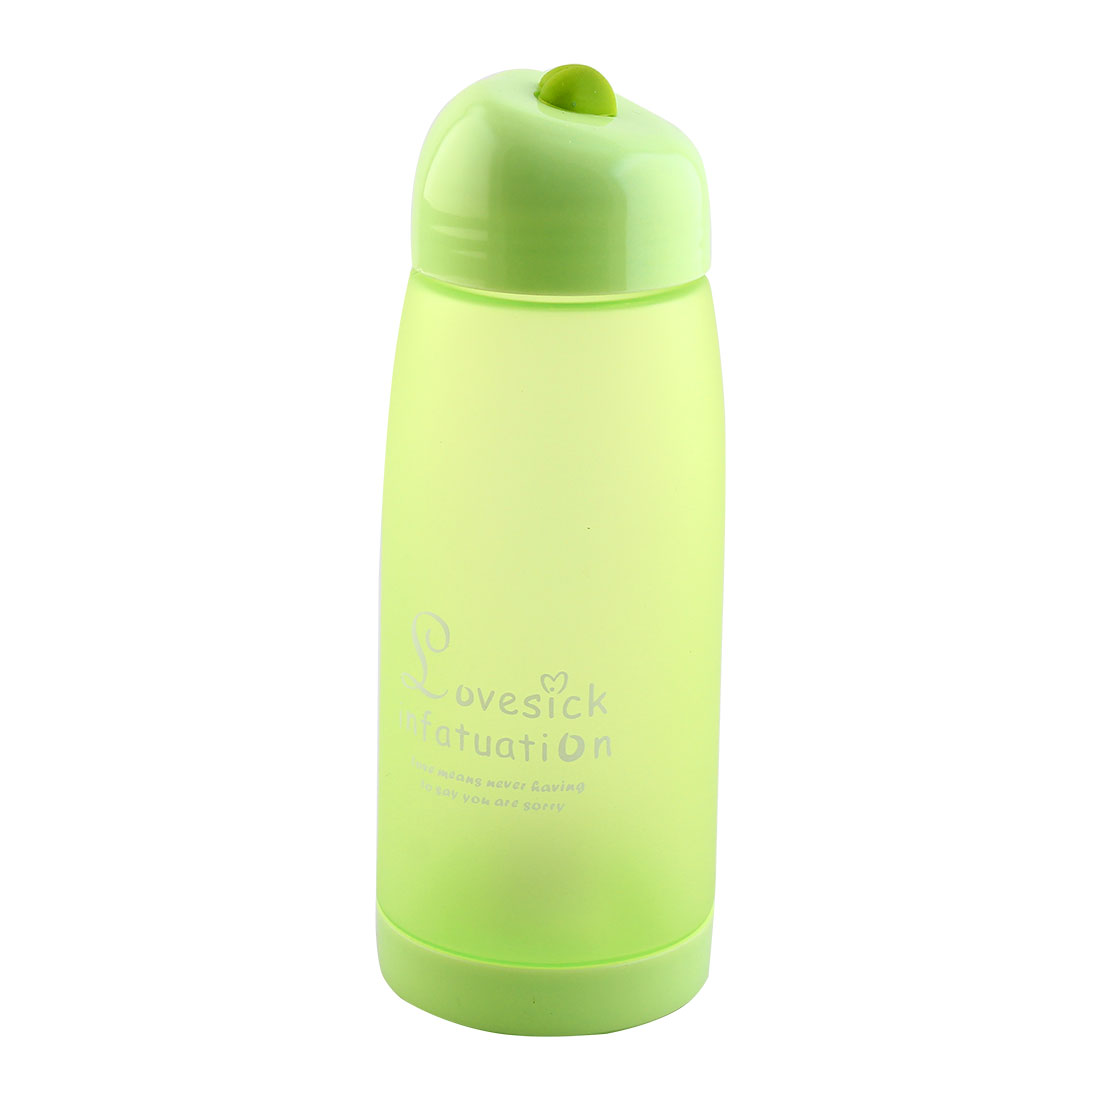 School Office Plastic Letter Pattern Water Bottle Frosted Cup Mug Portable Sports Kettle Green 500ml